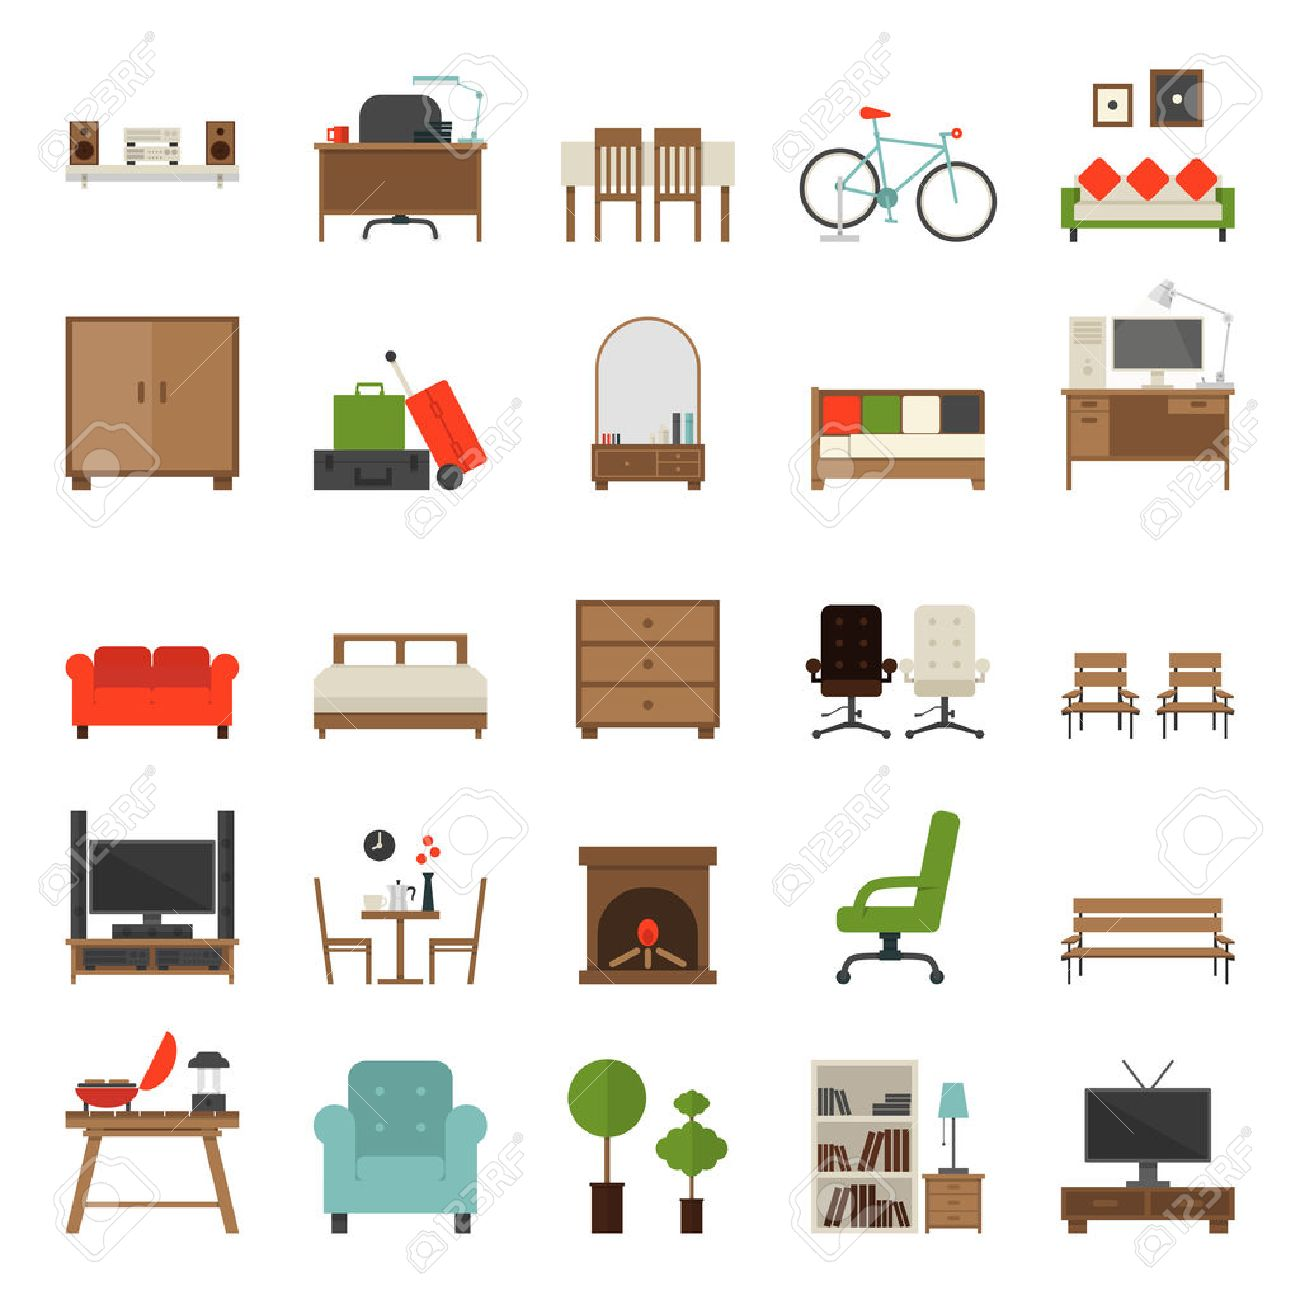 Furniture logo vector free download - Furniture Furniture Icons Flat Design Vector